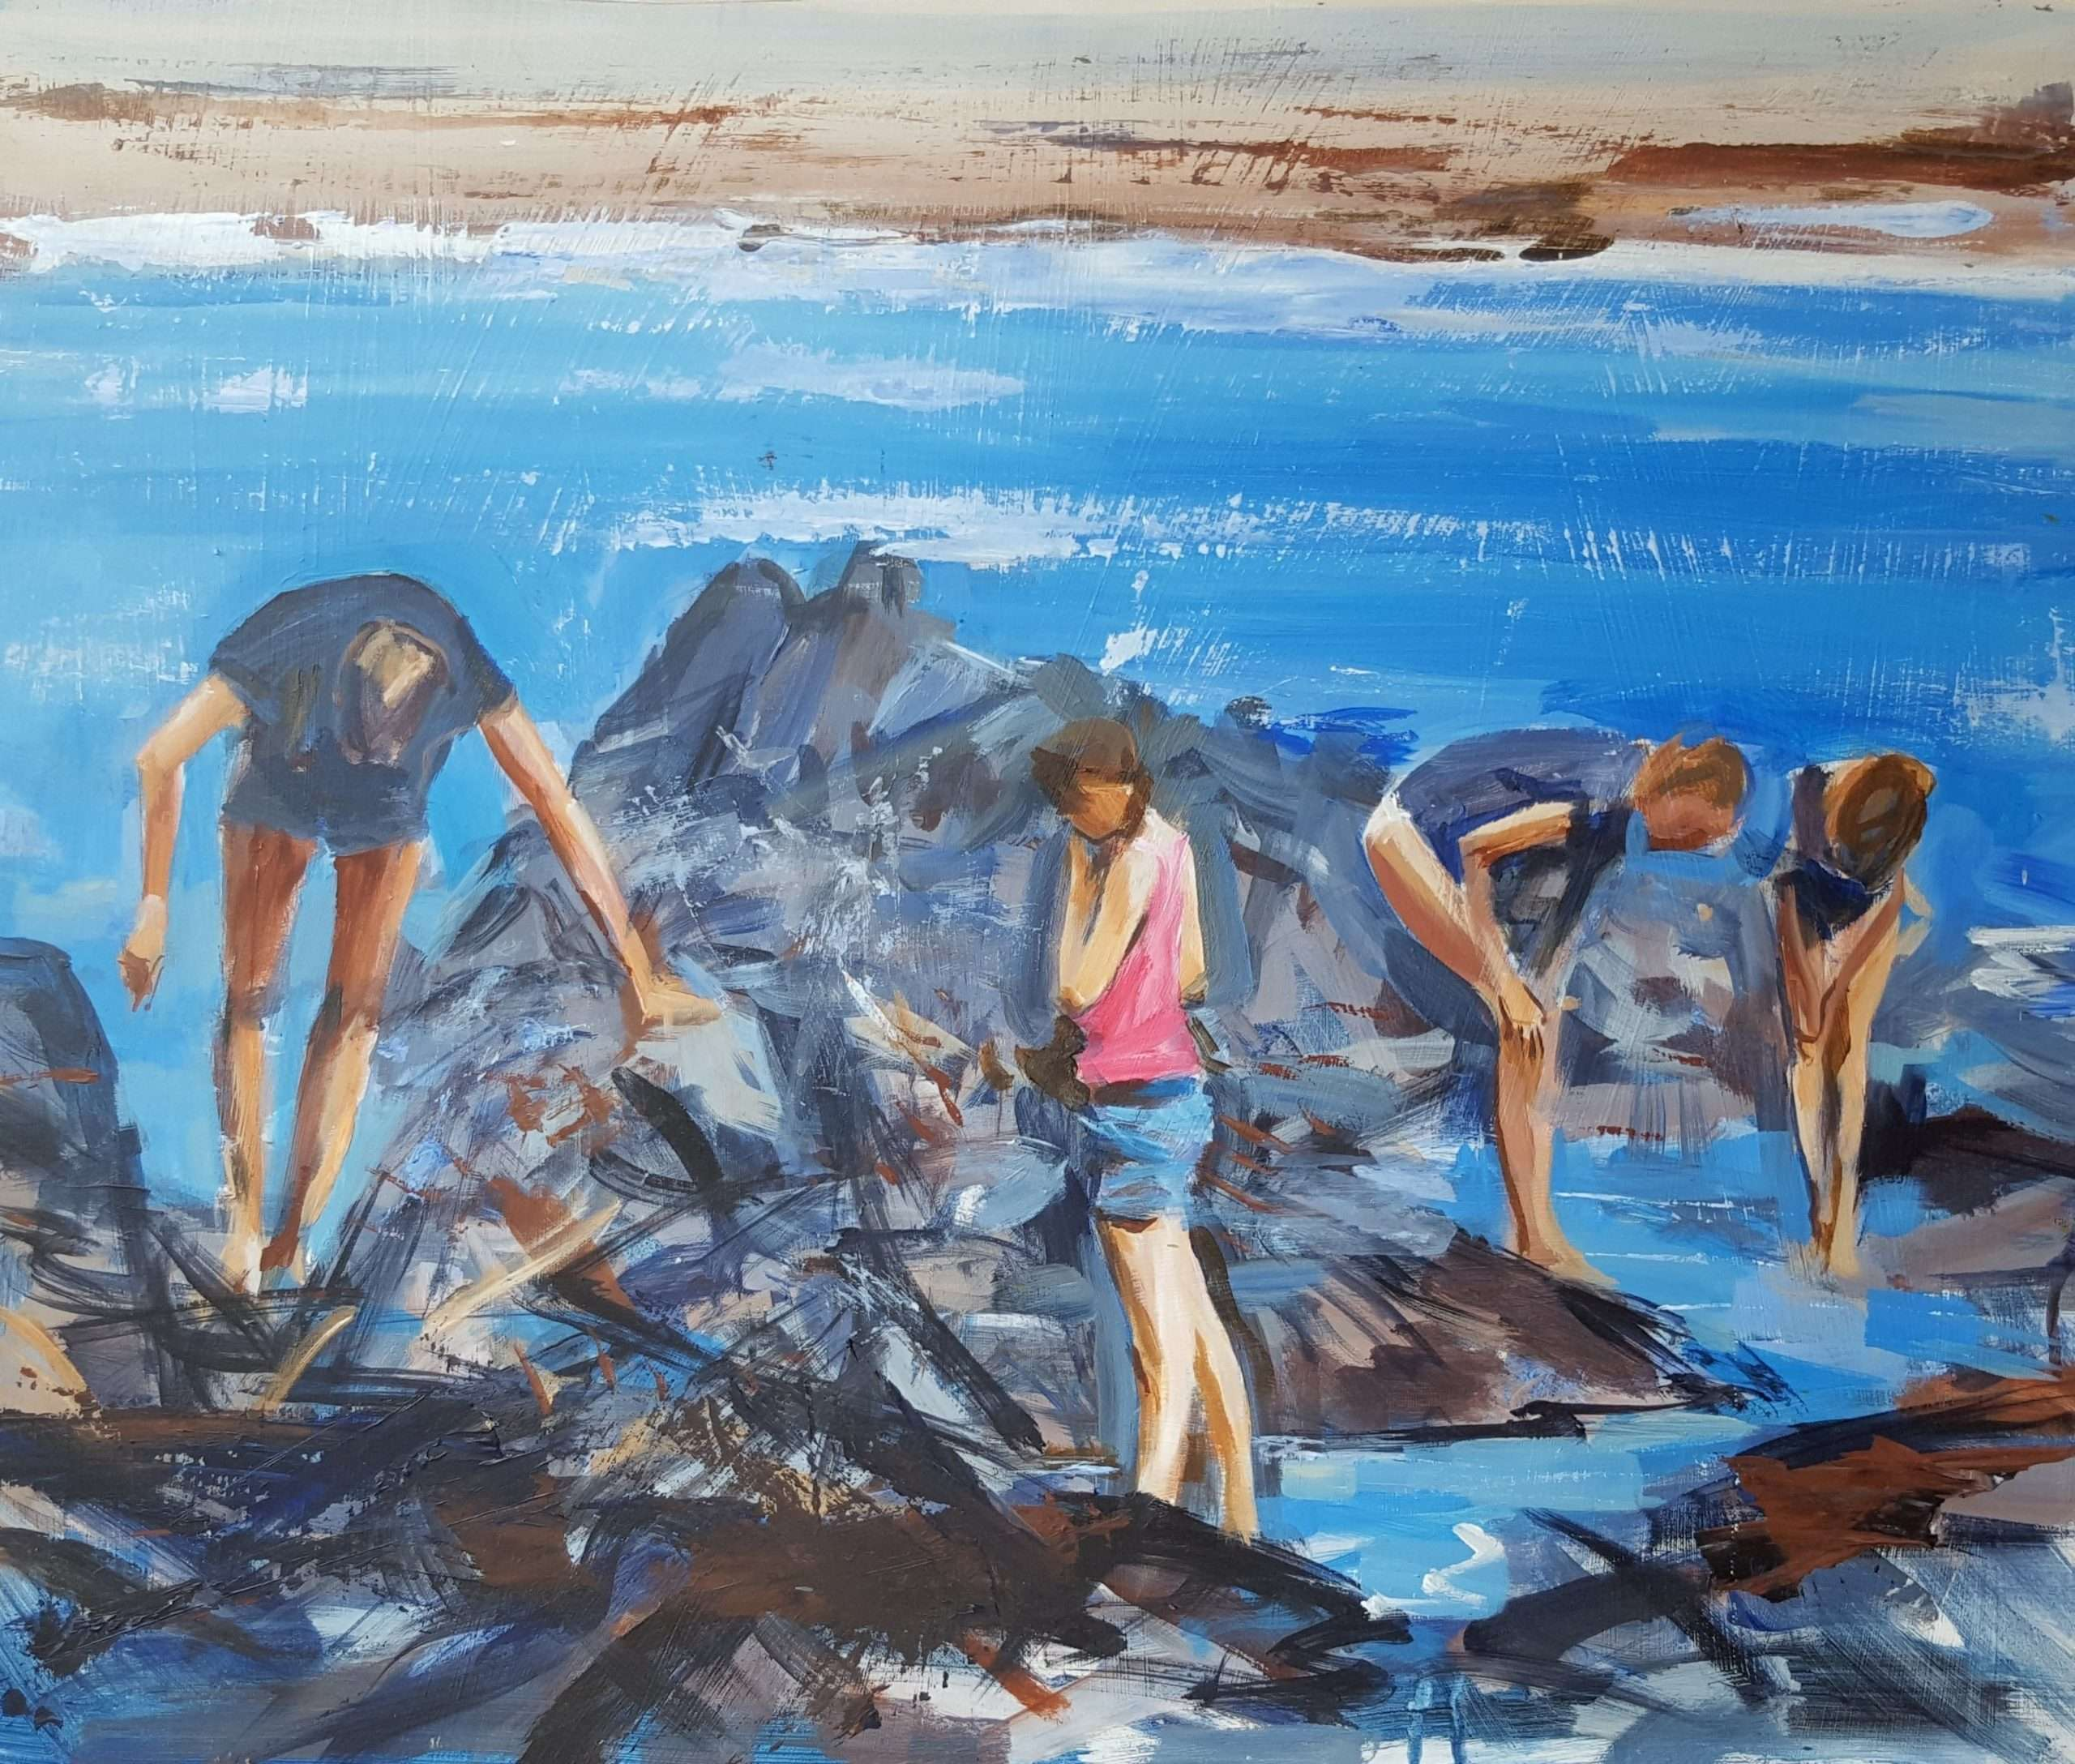 In the rock pools